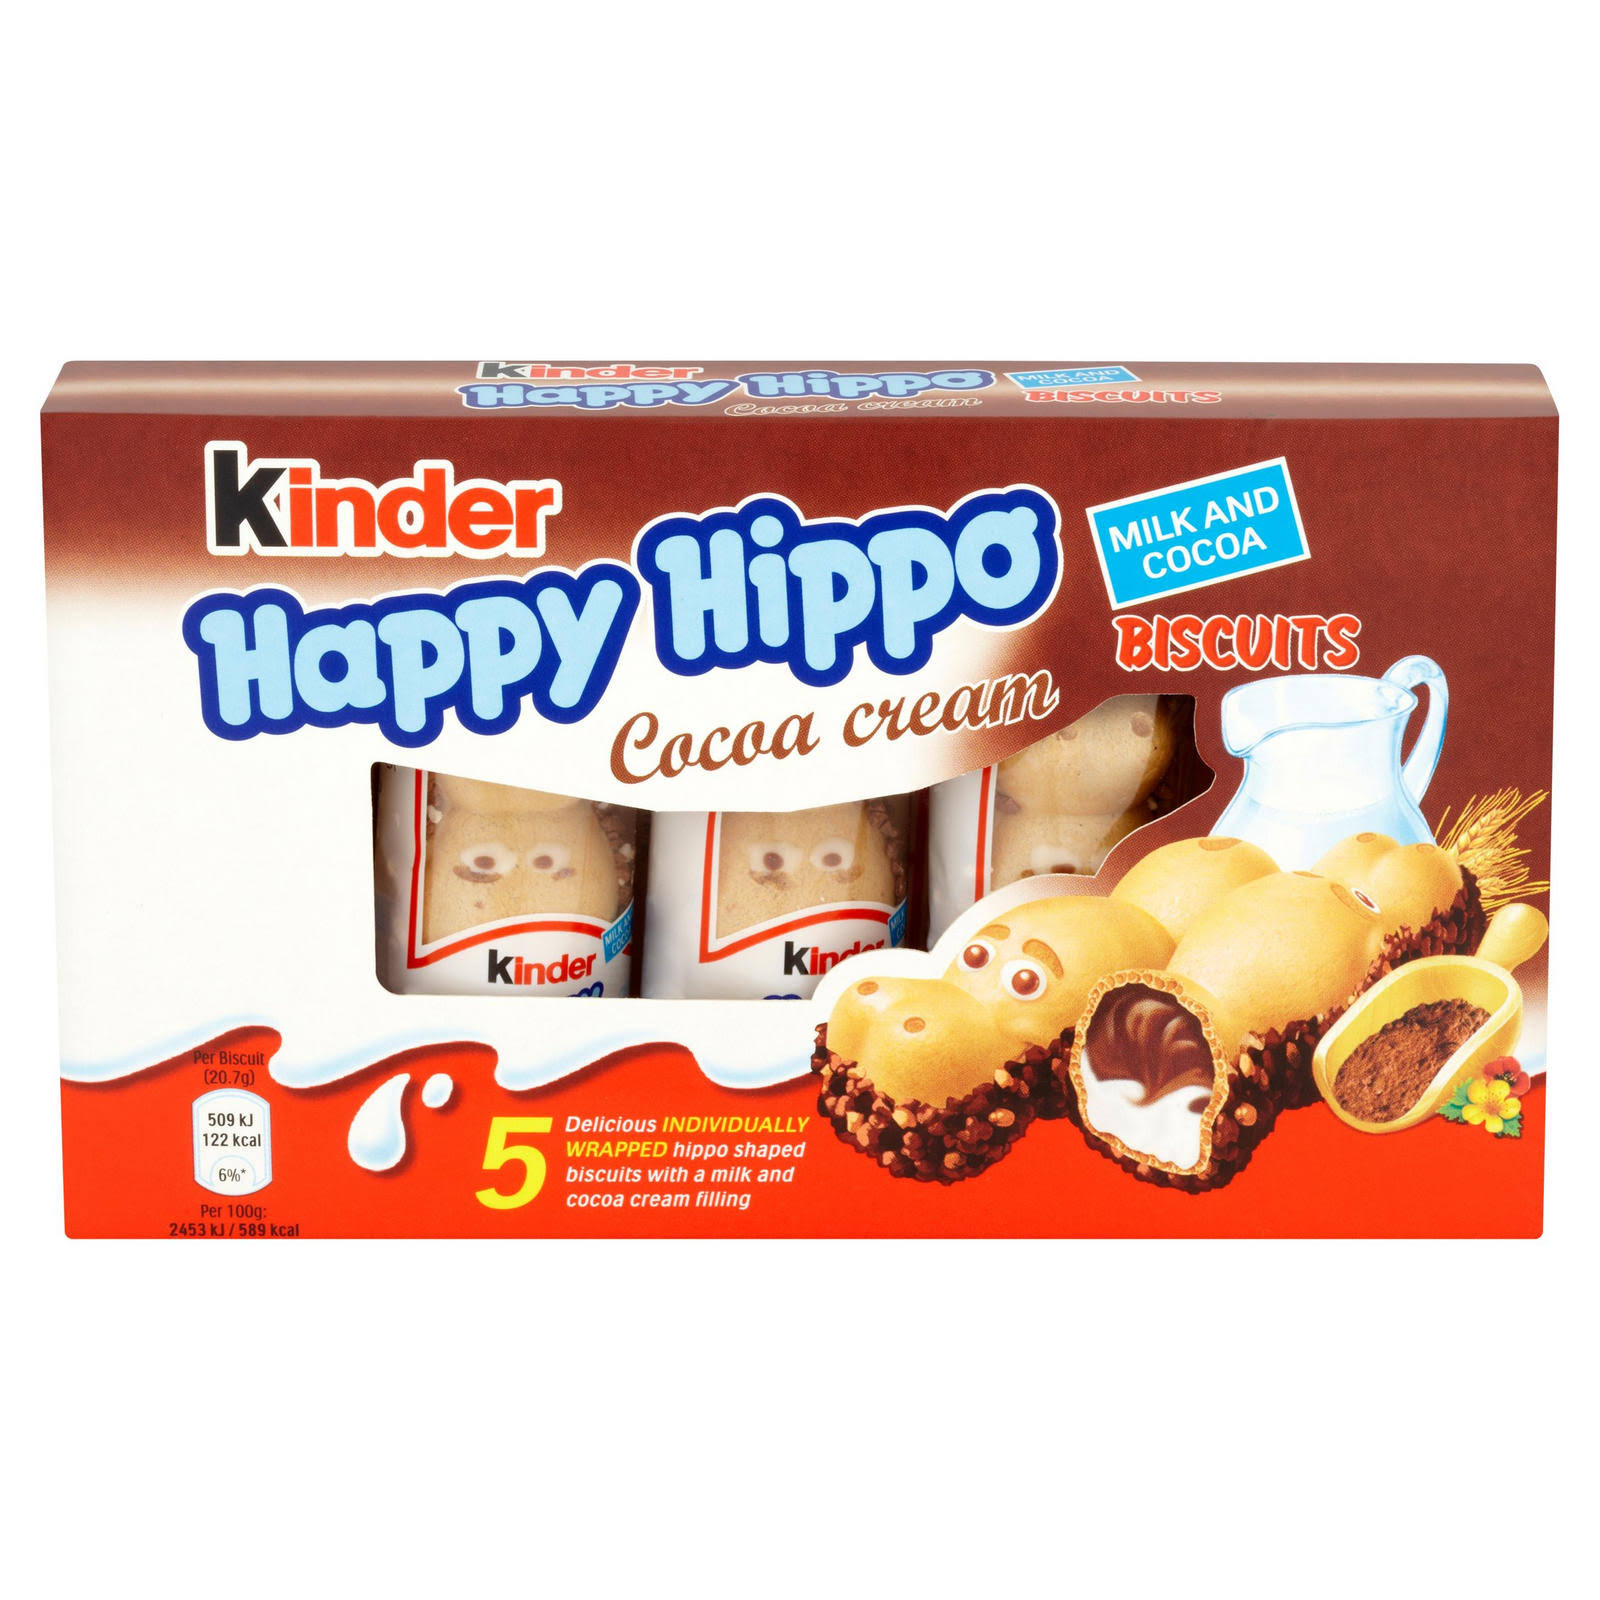 Kinder Happy Hippo Biscuits - Cocoa Chocolate Cream, 20.7g, 5pk